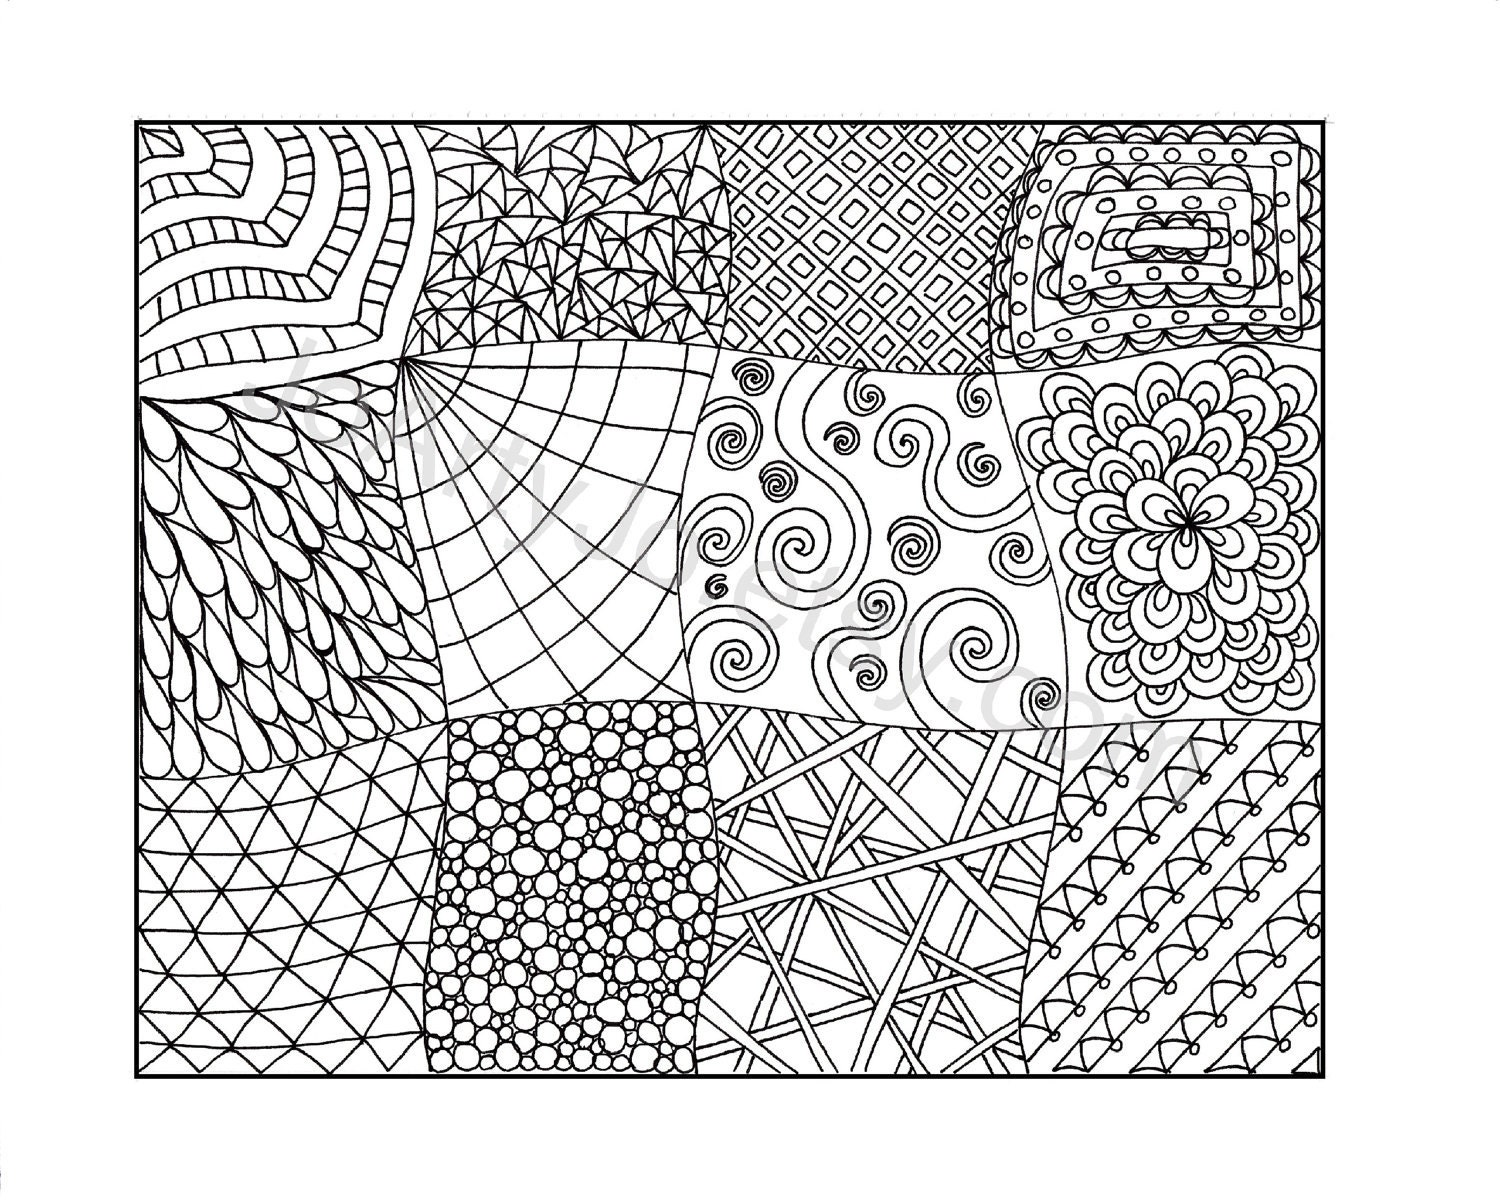 Coloring Pages For Zen : Zendoodle Coloring Page Printable PDF Zentangle Inspired